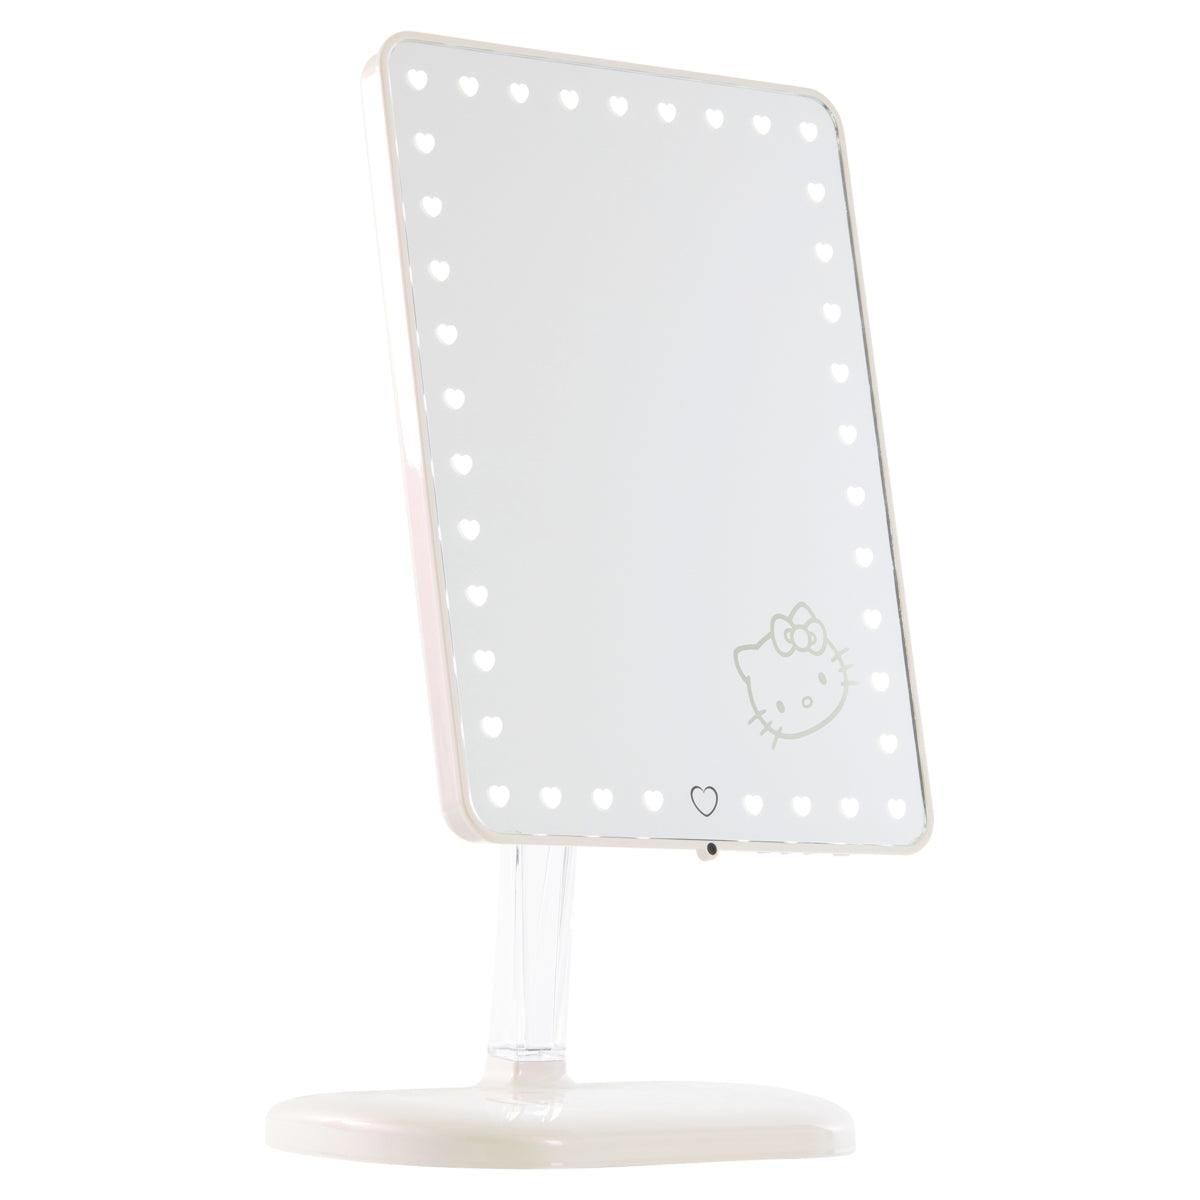 Hello Kitty Edition Touch Pro LED Makeup Mirror with Bluetooth  Audio+Speakerphone \u0026 USB Charger